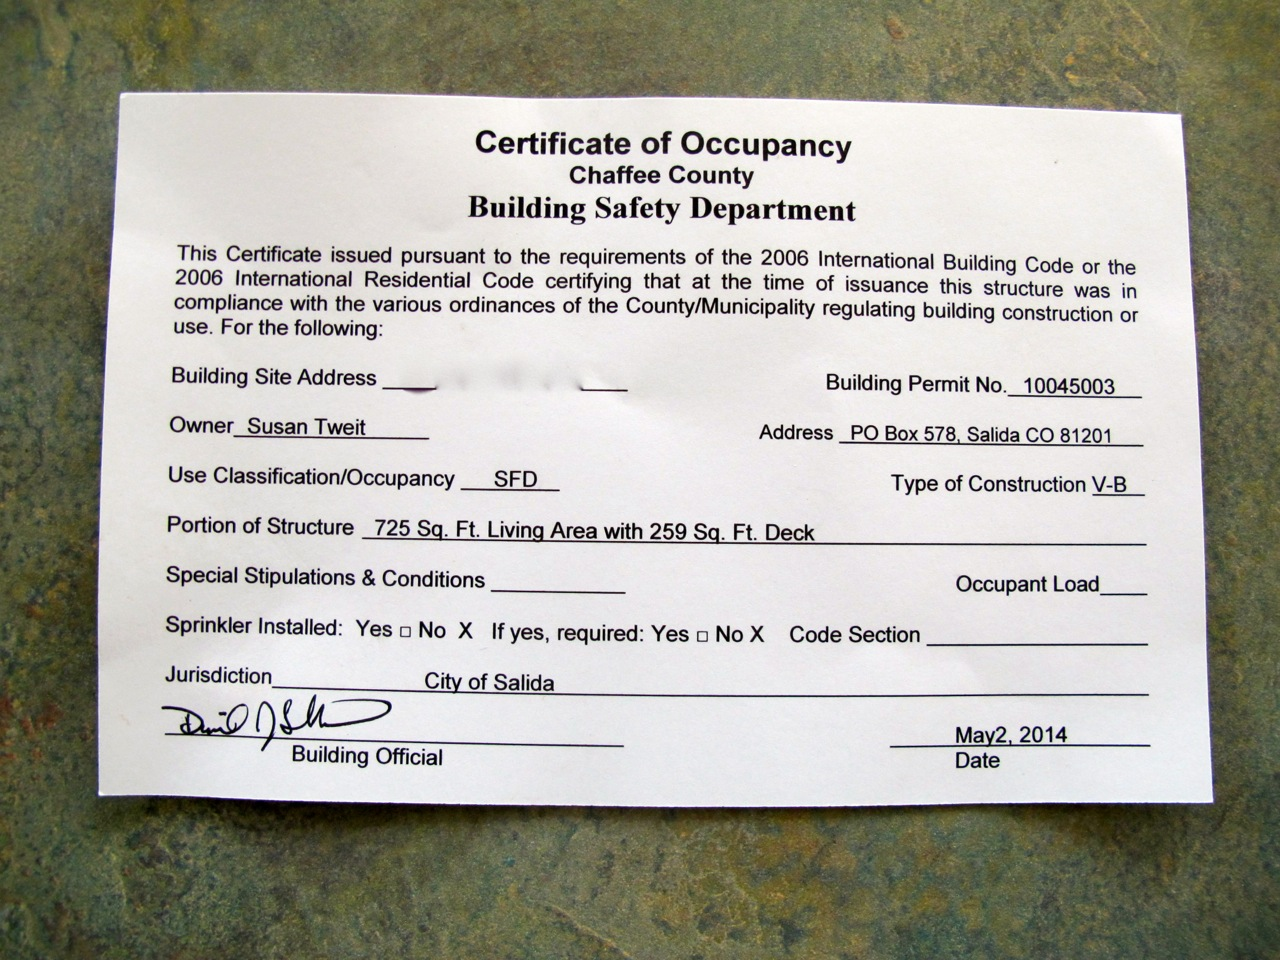 The Certificate of Occupancy for Tree House.